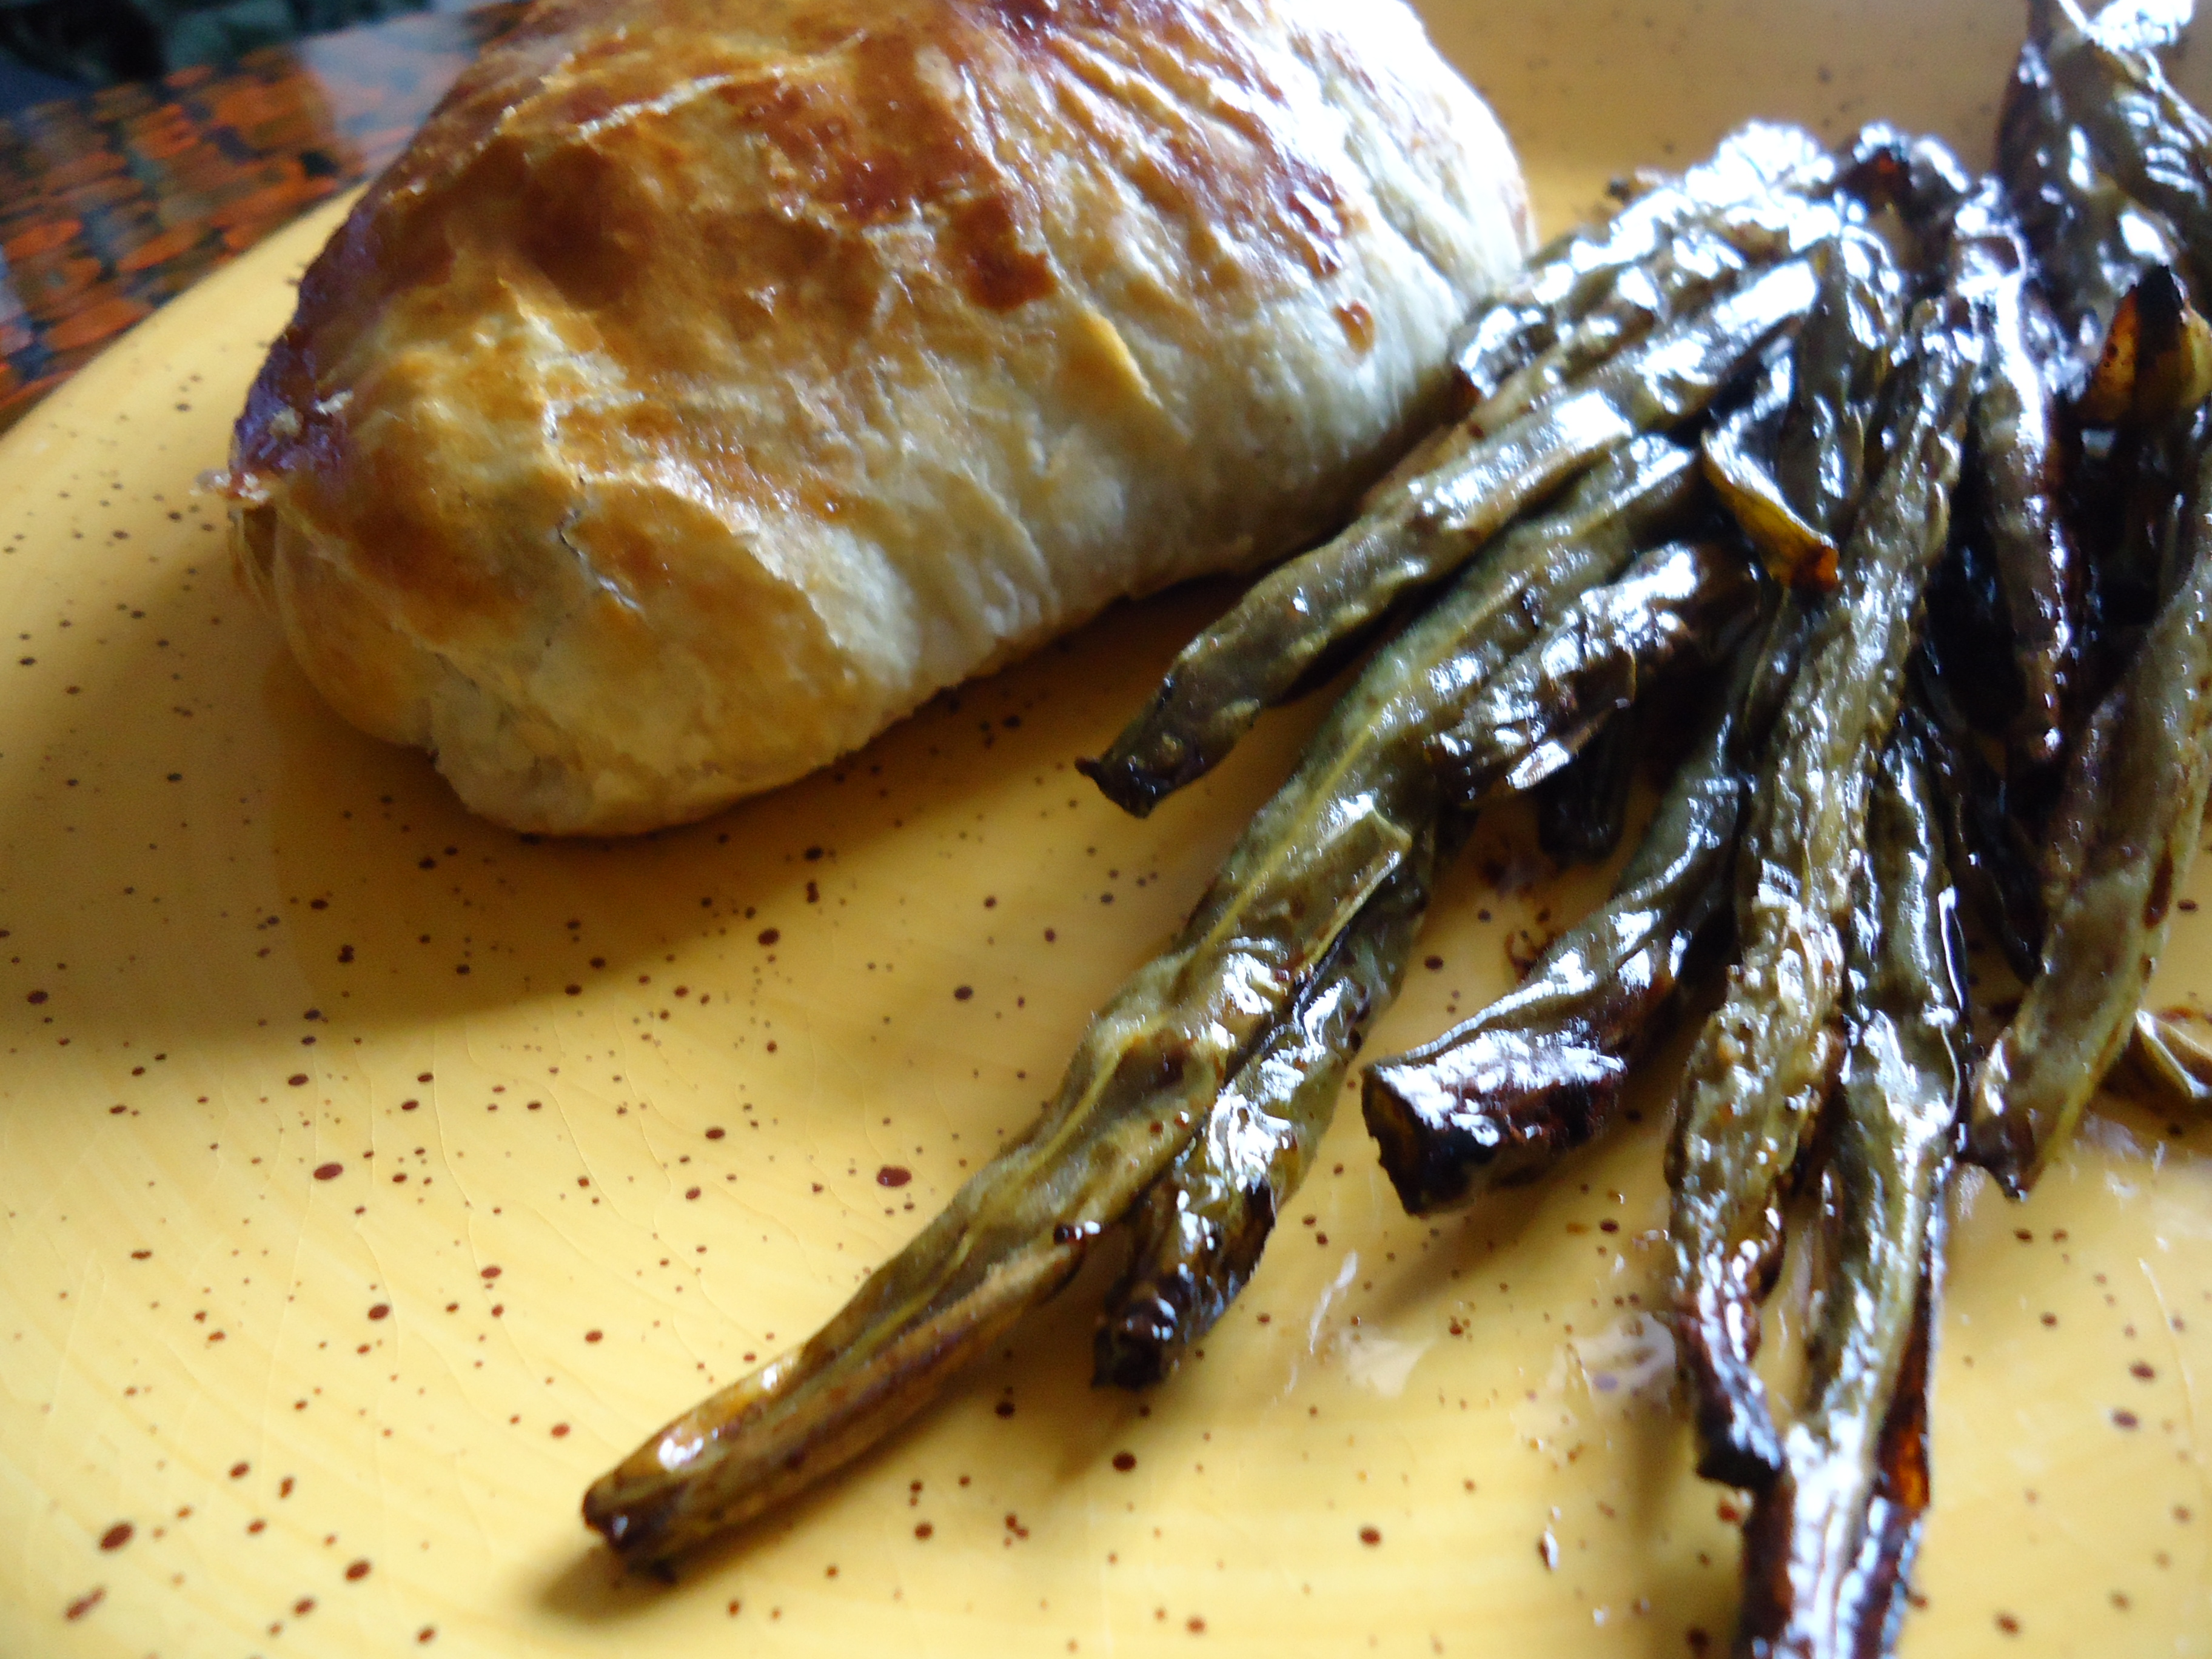 I Forgot To Add The Sauce When I Took The Photos, But I Made A Lemon Caper  Dill Sauce With Greek Yogurt To Spoon Over The Salmon En Croute,